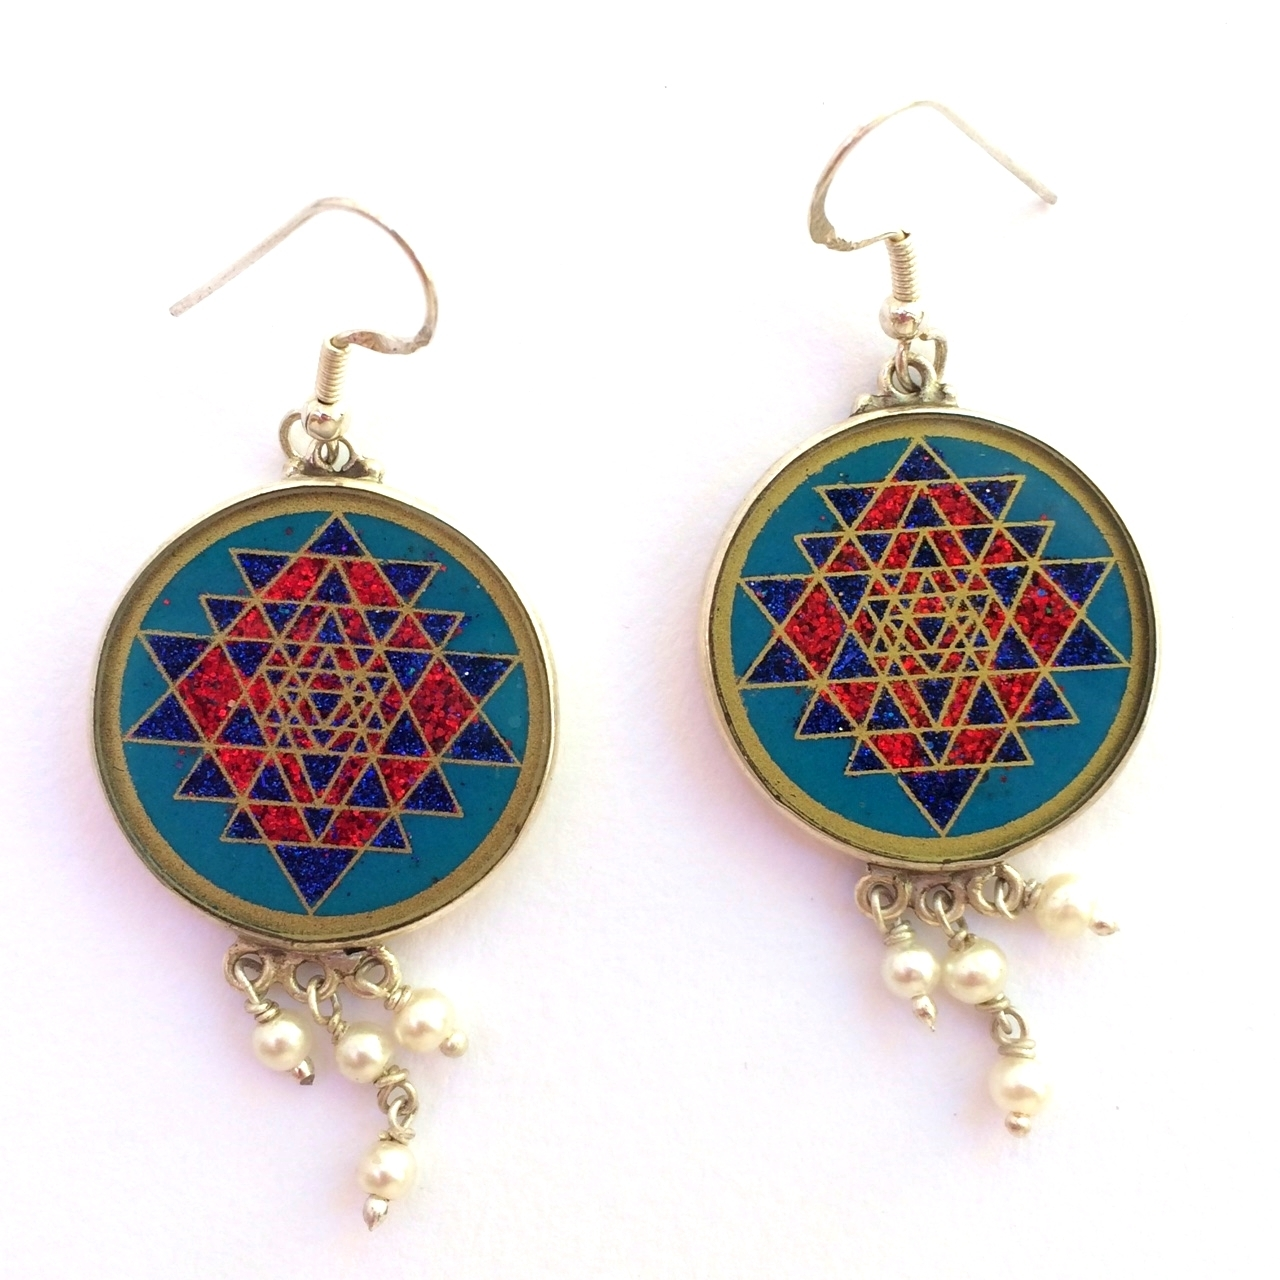 Sri Yantra Sacred Geometry Earrings (turquoise) by Scalar Heart Collection 708315056735